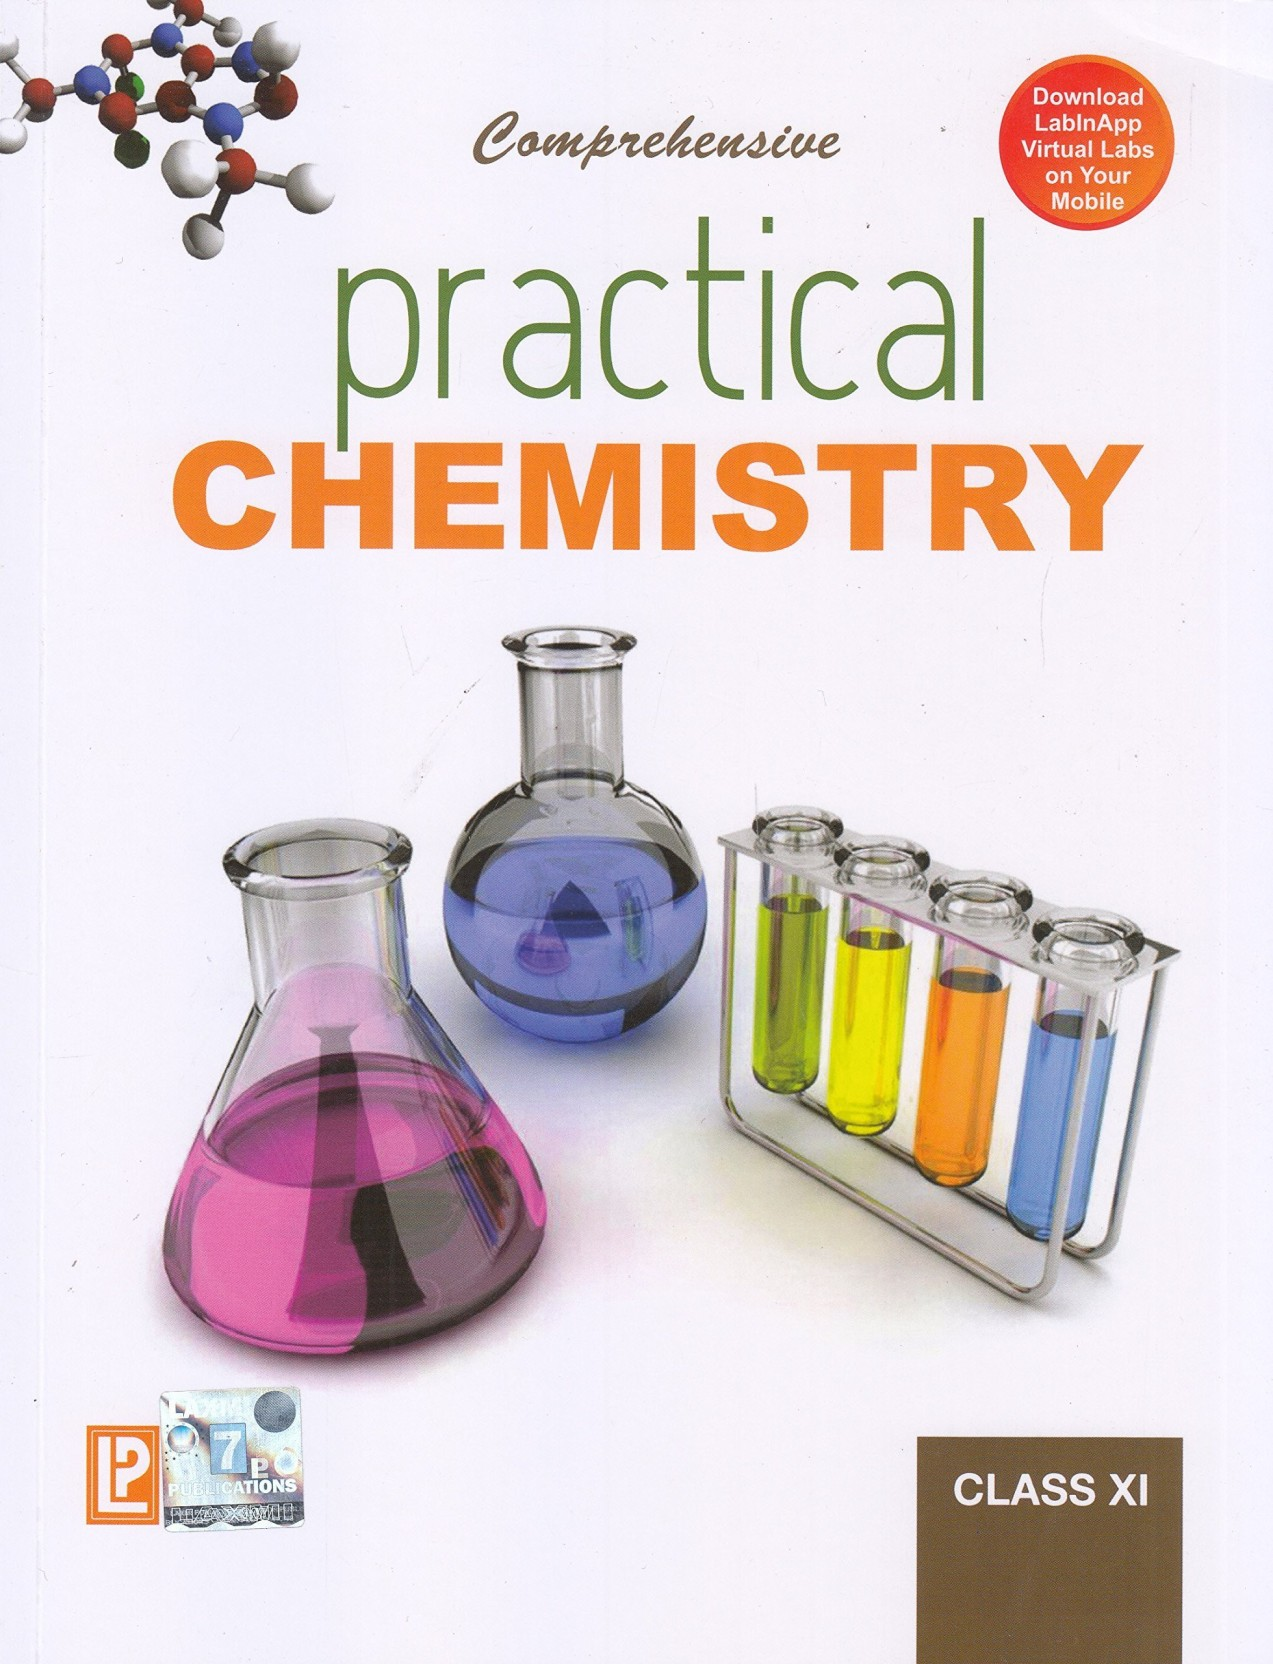 Comprehensive Practical Chemistry (Class Xi) New Edition New Edition. ADD  TO CART